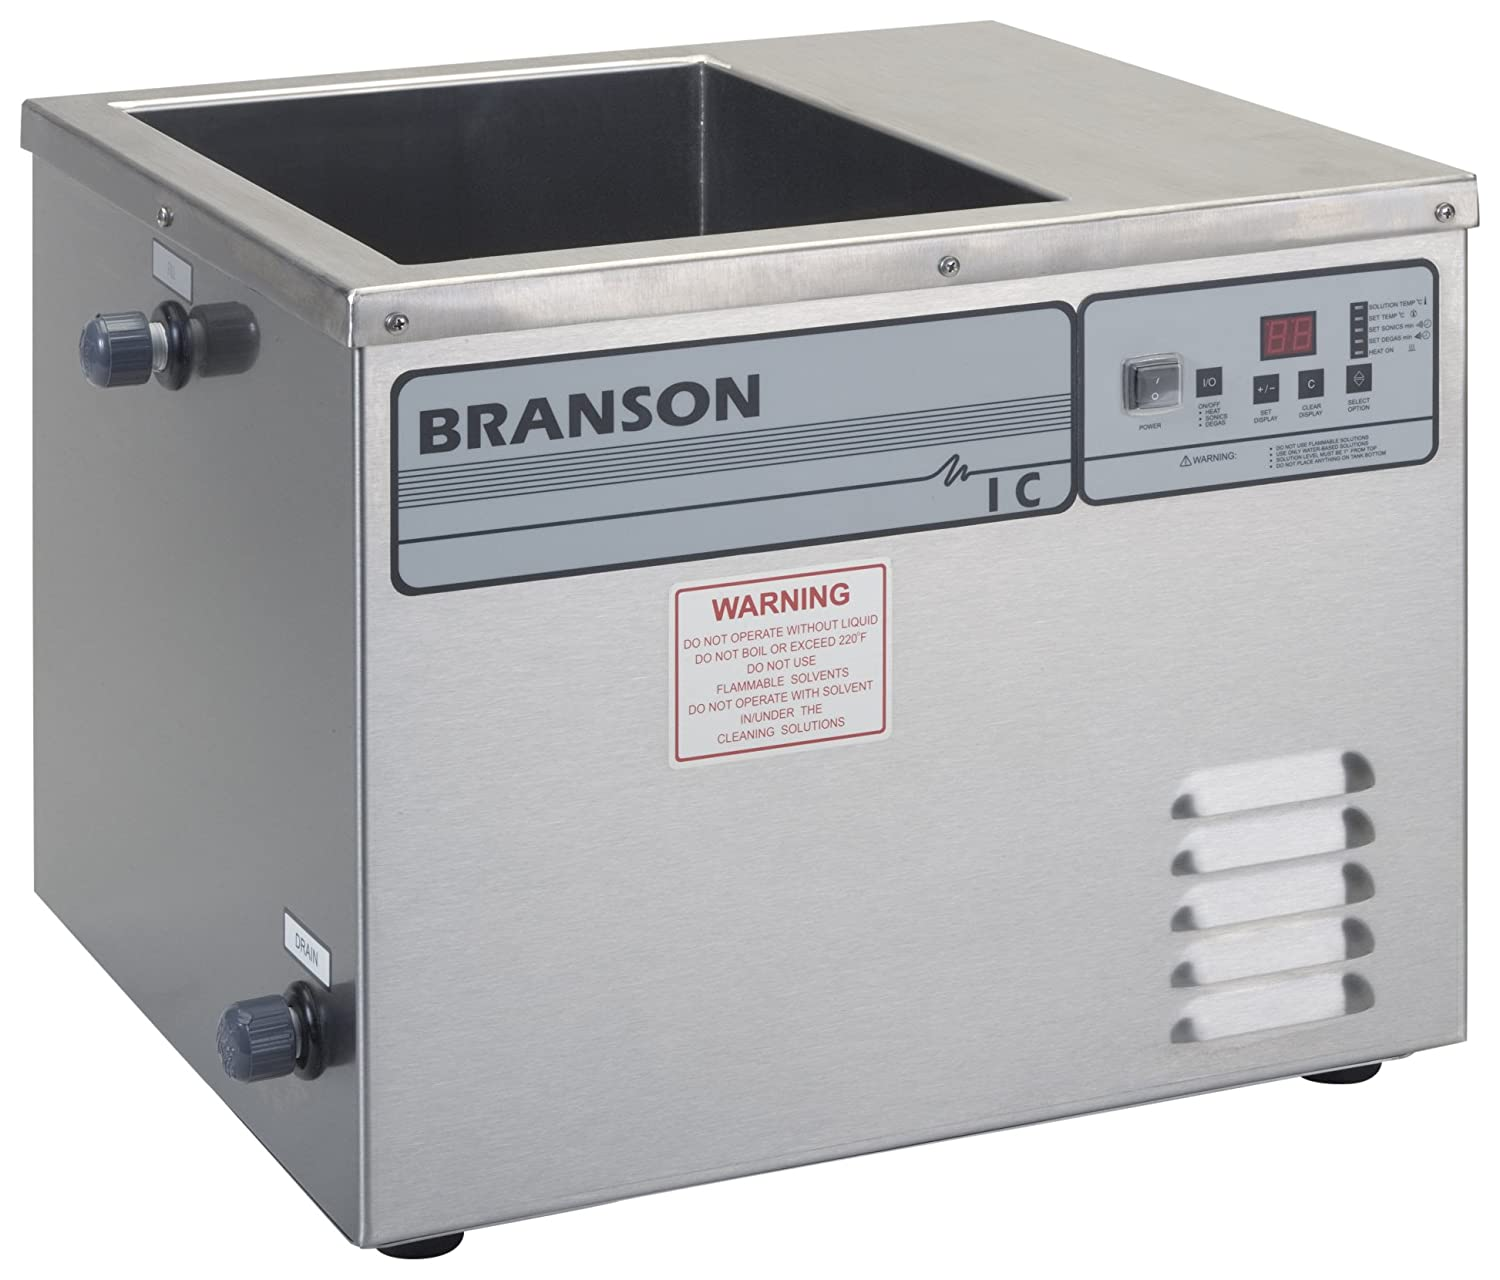 Branson 101-063-197R Sonifier Analog with 1/2